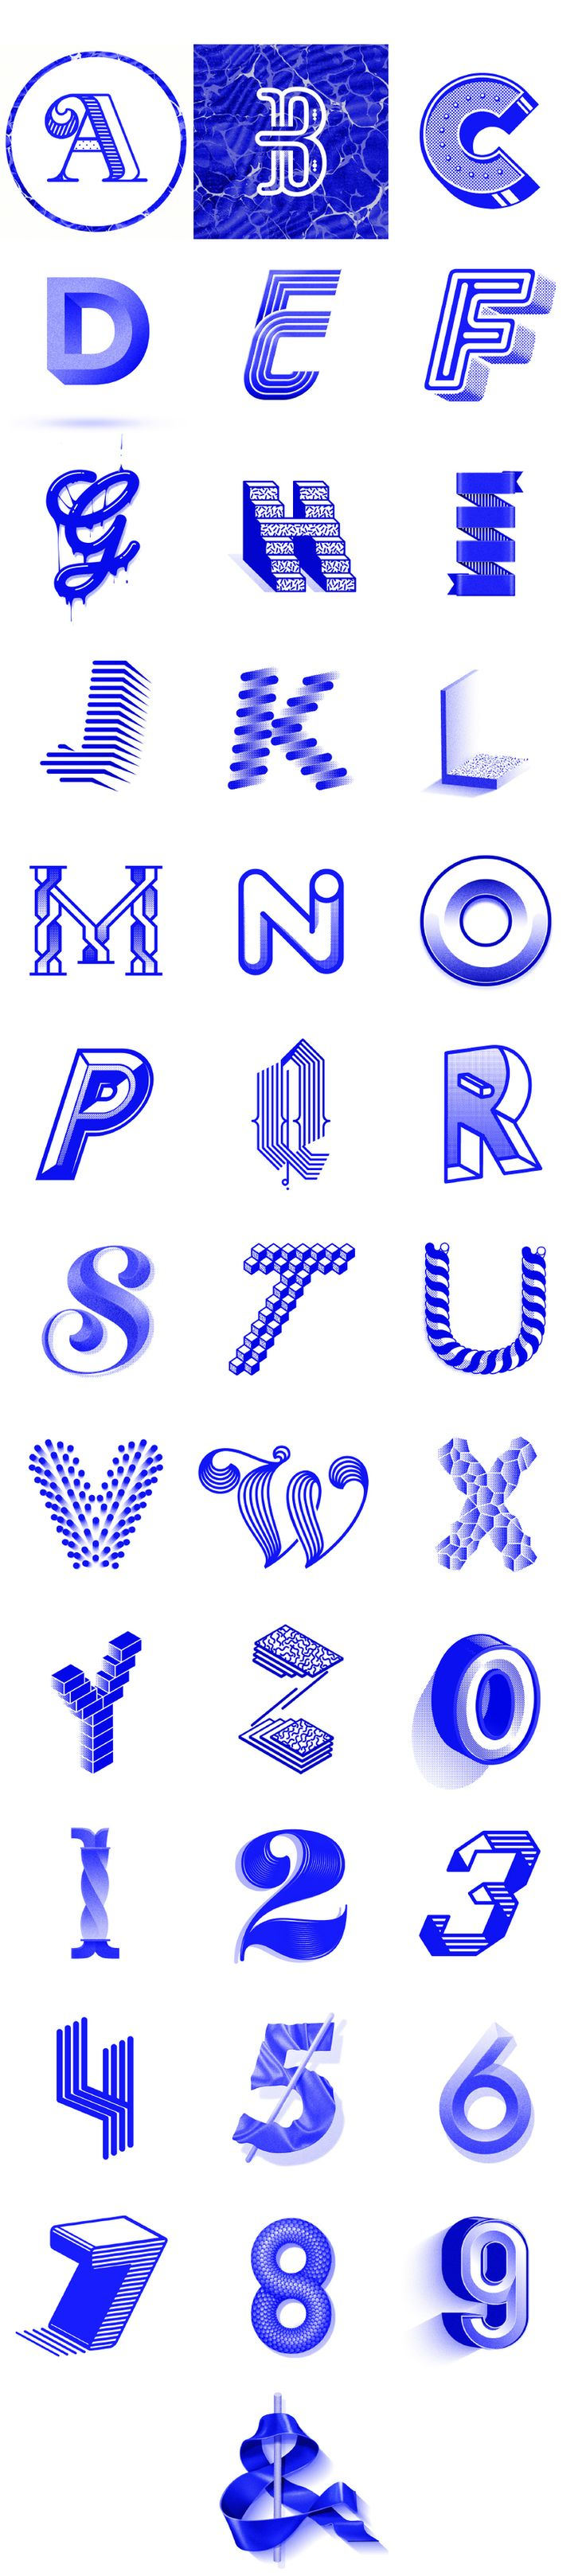 Blue series / 36 Days of type #2 1